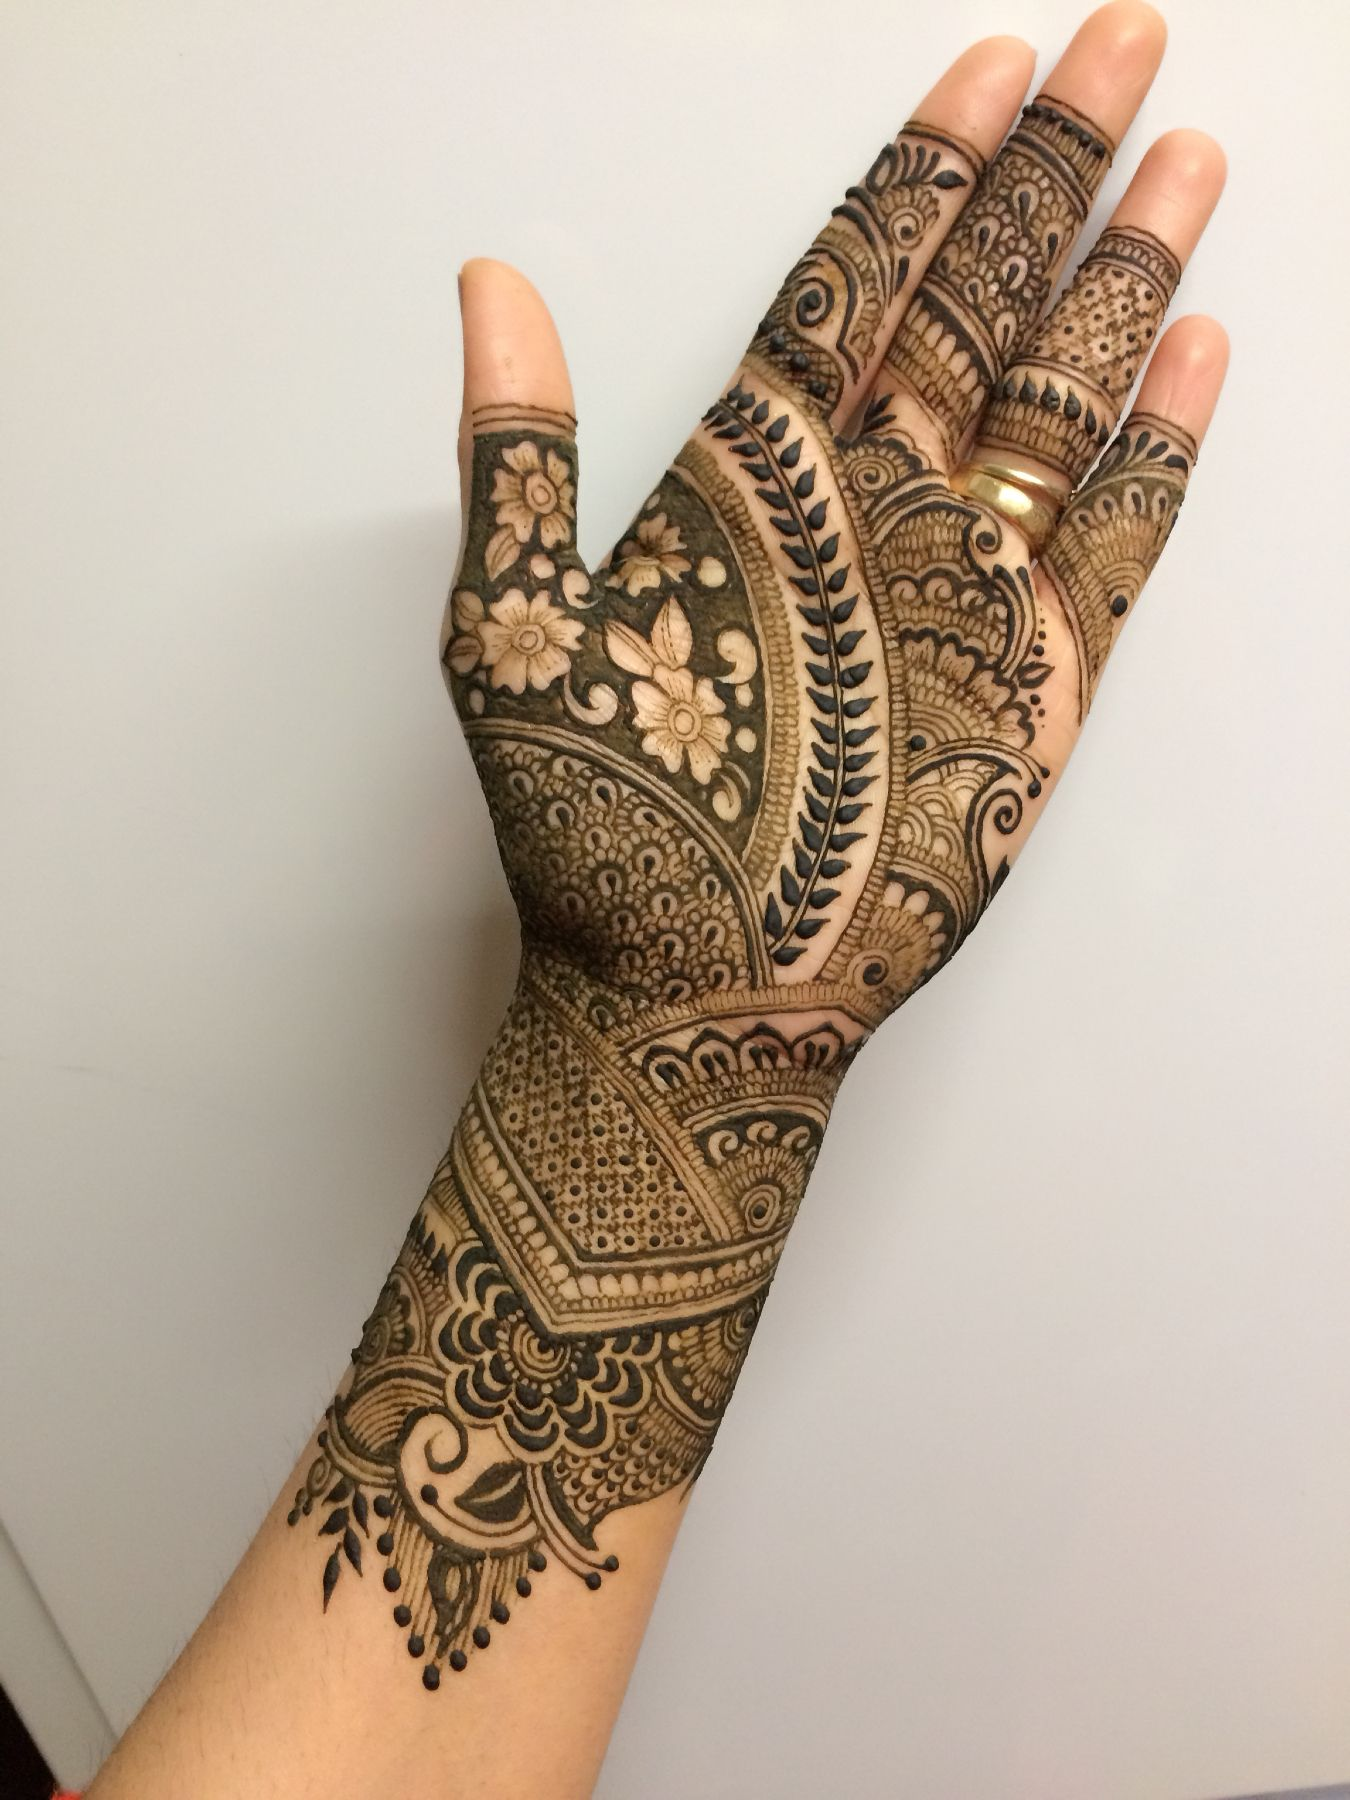 Pin by mamta accha on Everything desi. Go desi Mehndi